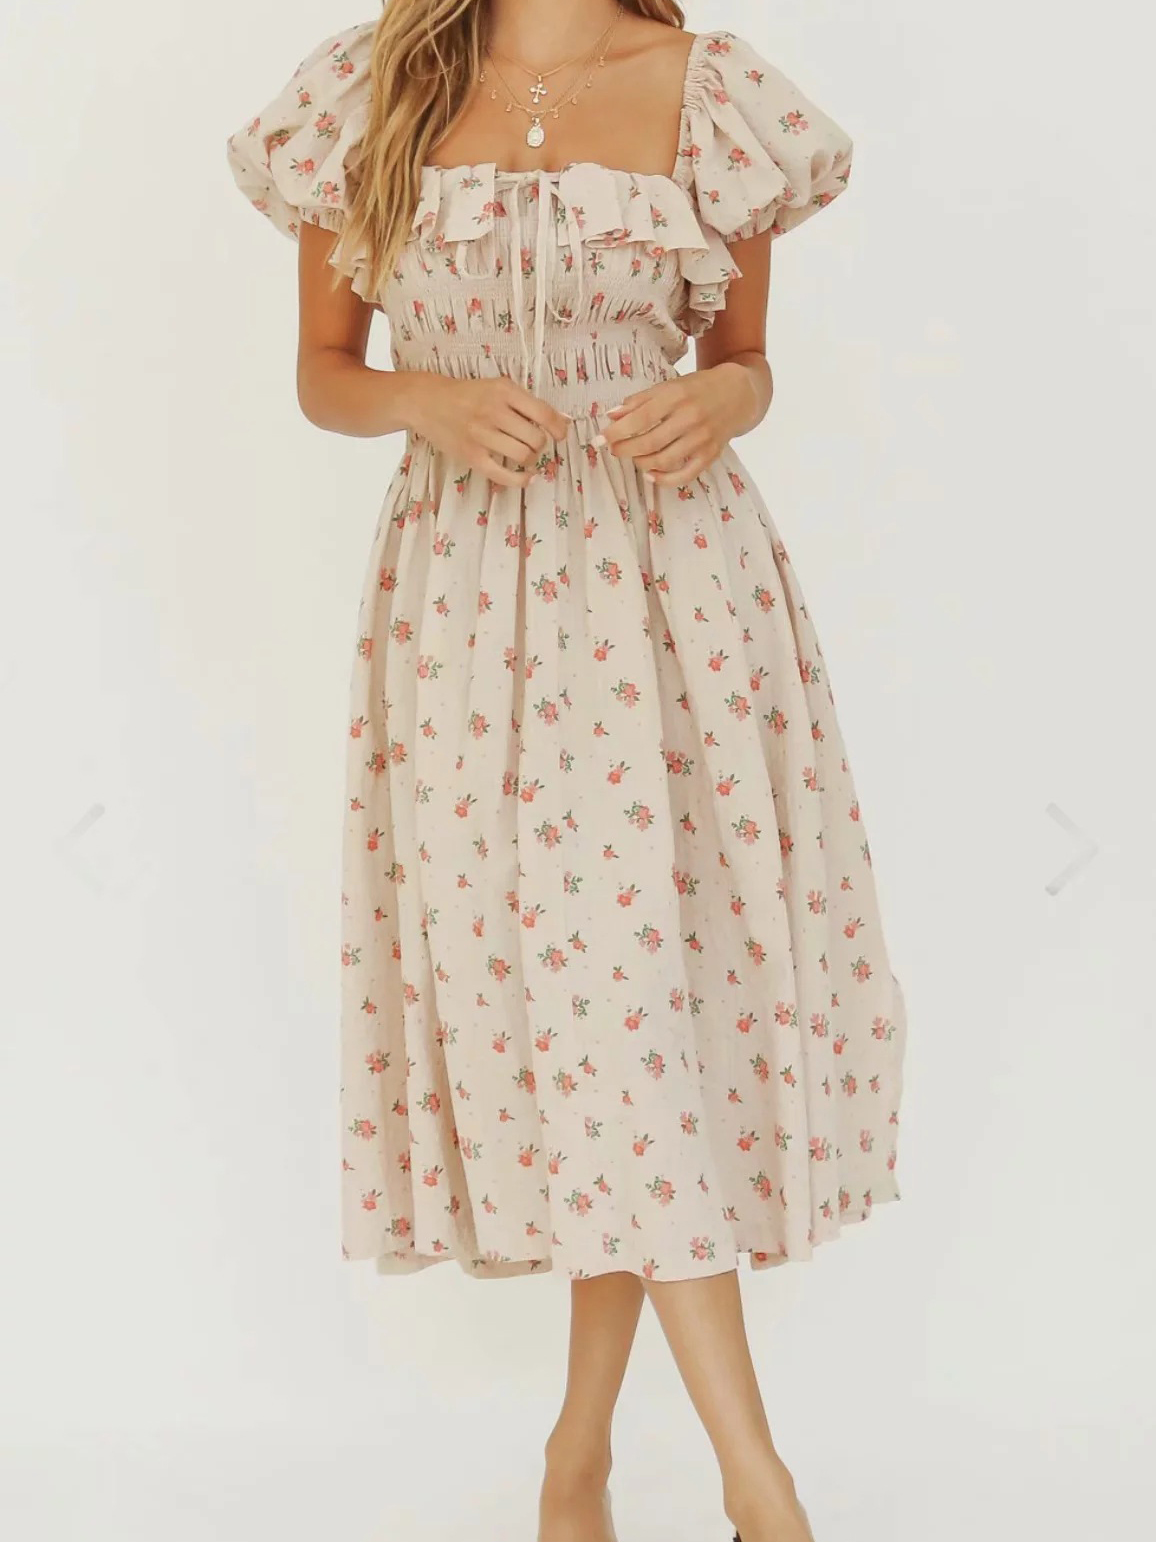 Ruffled Square Neck Short Sleeve Floral Dress